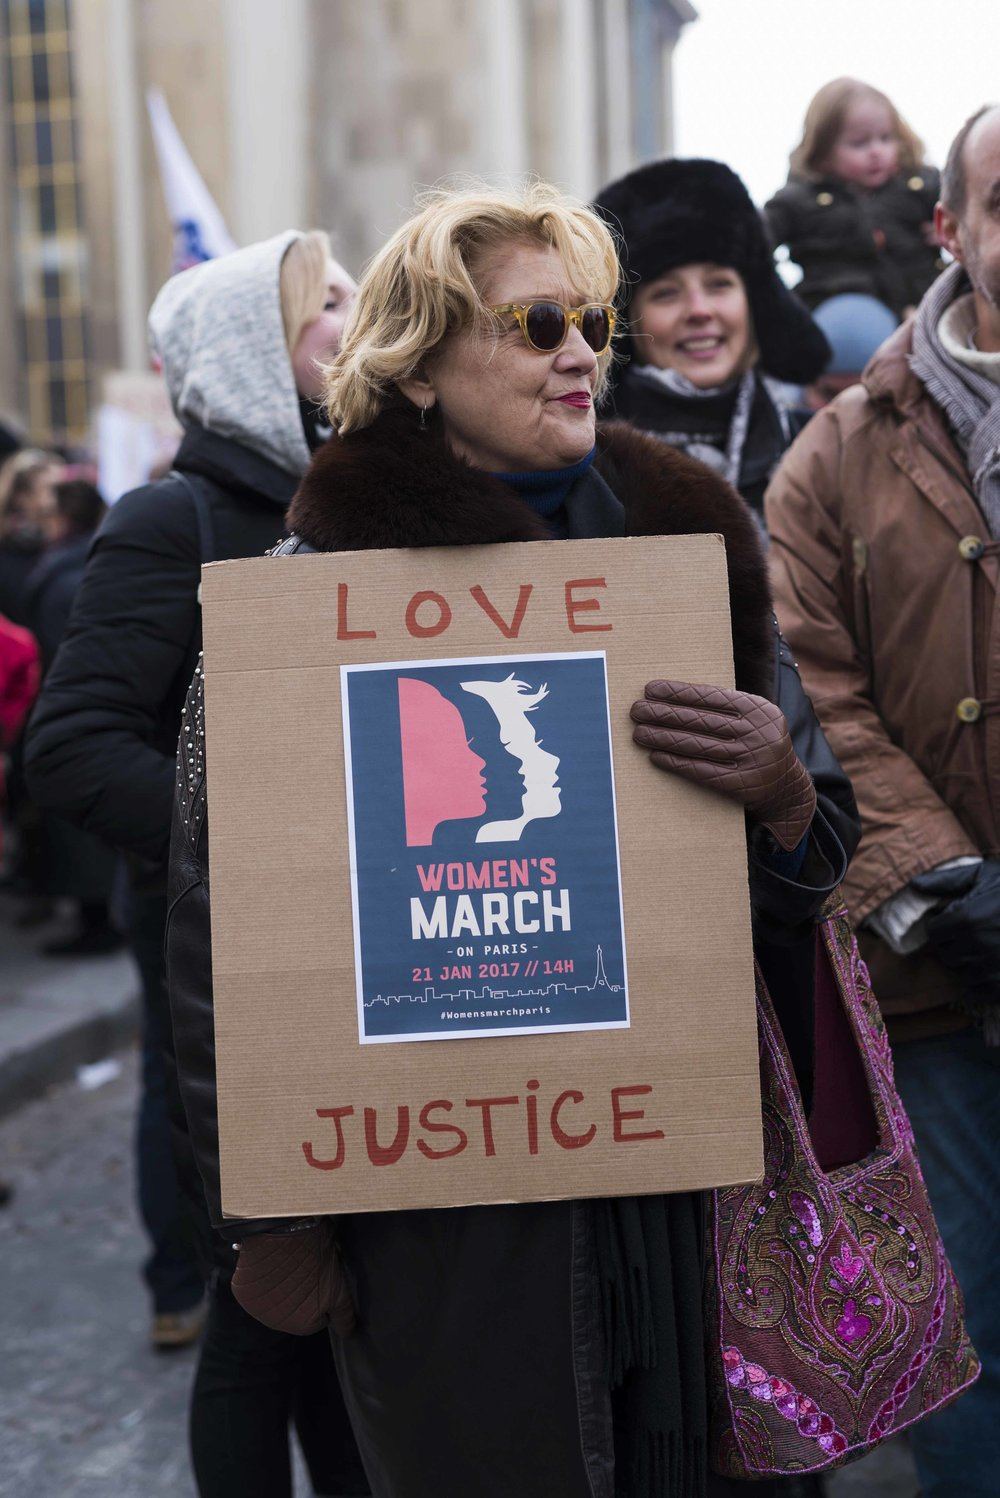 womens march paris old woman.jpg